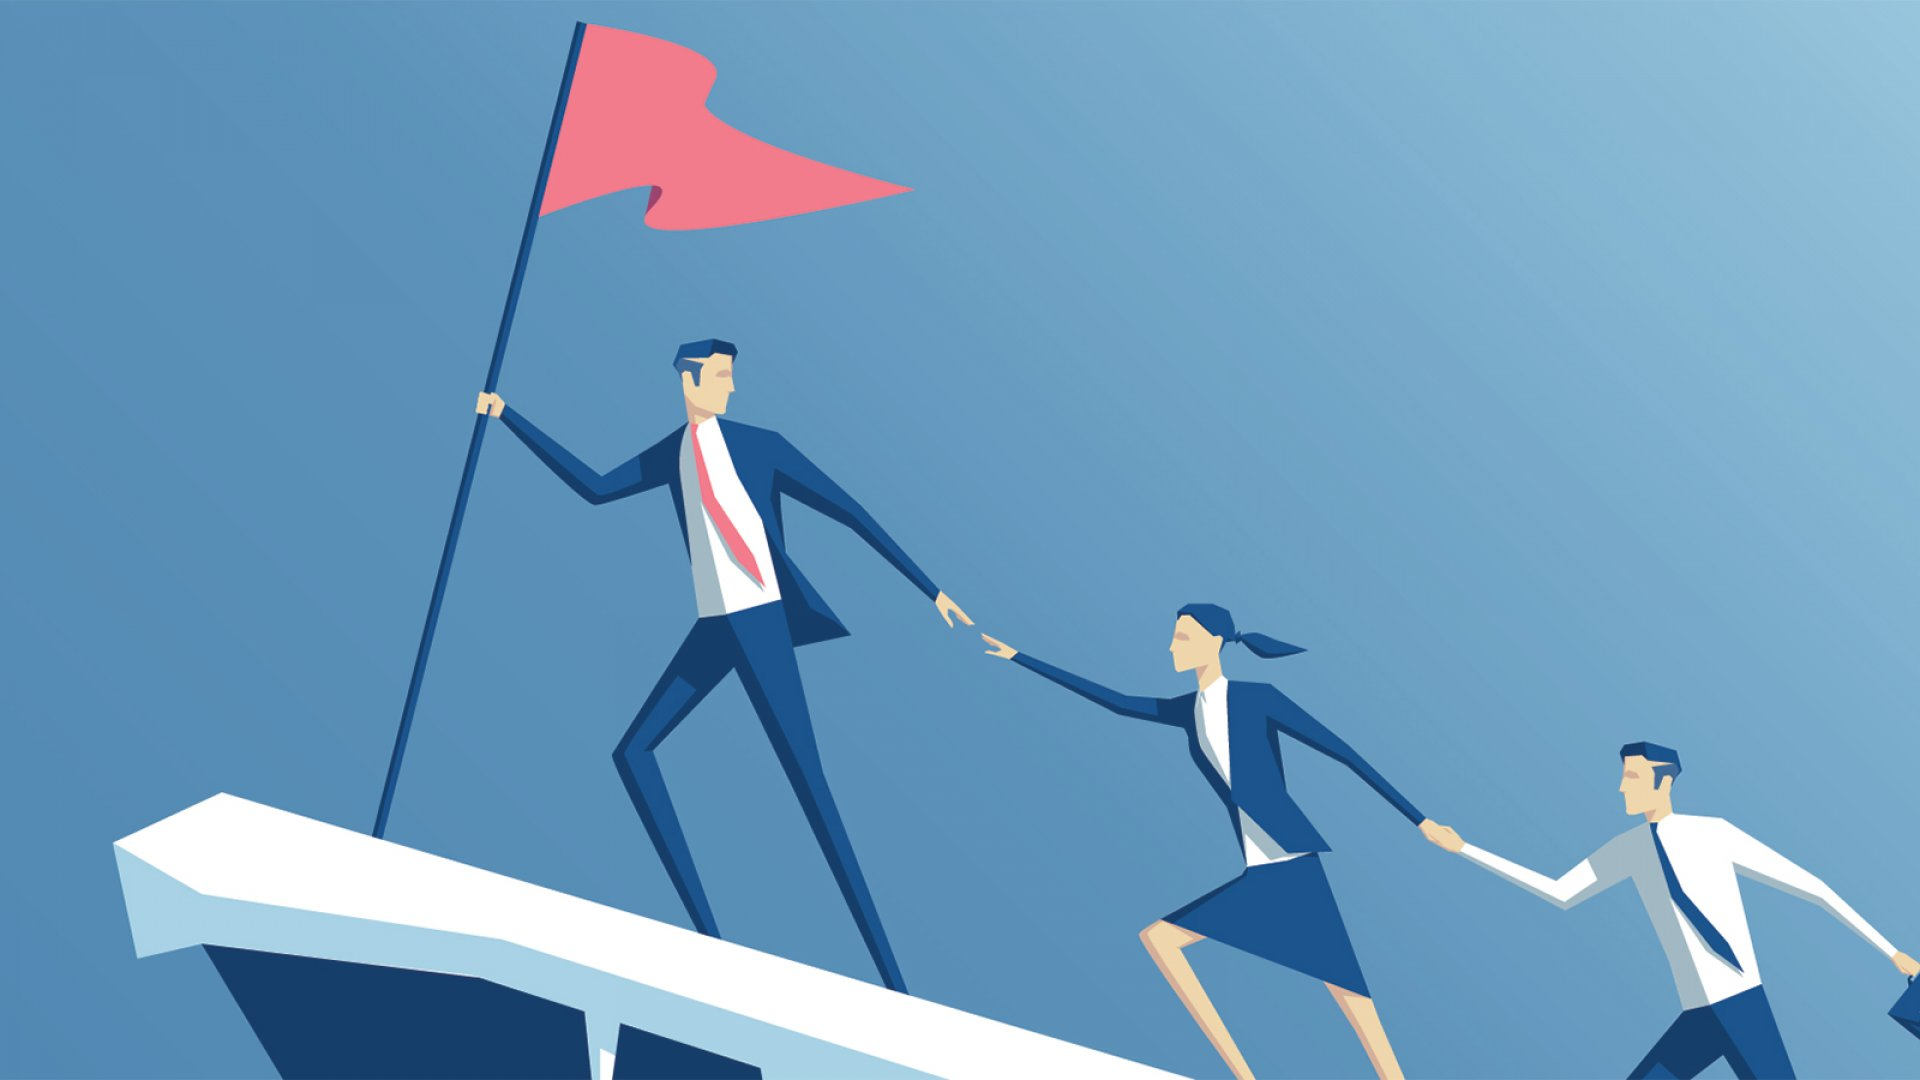 5 Helpful Tips to Inspire Leadership in Your Organisation